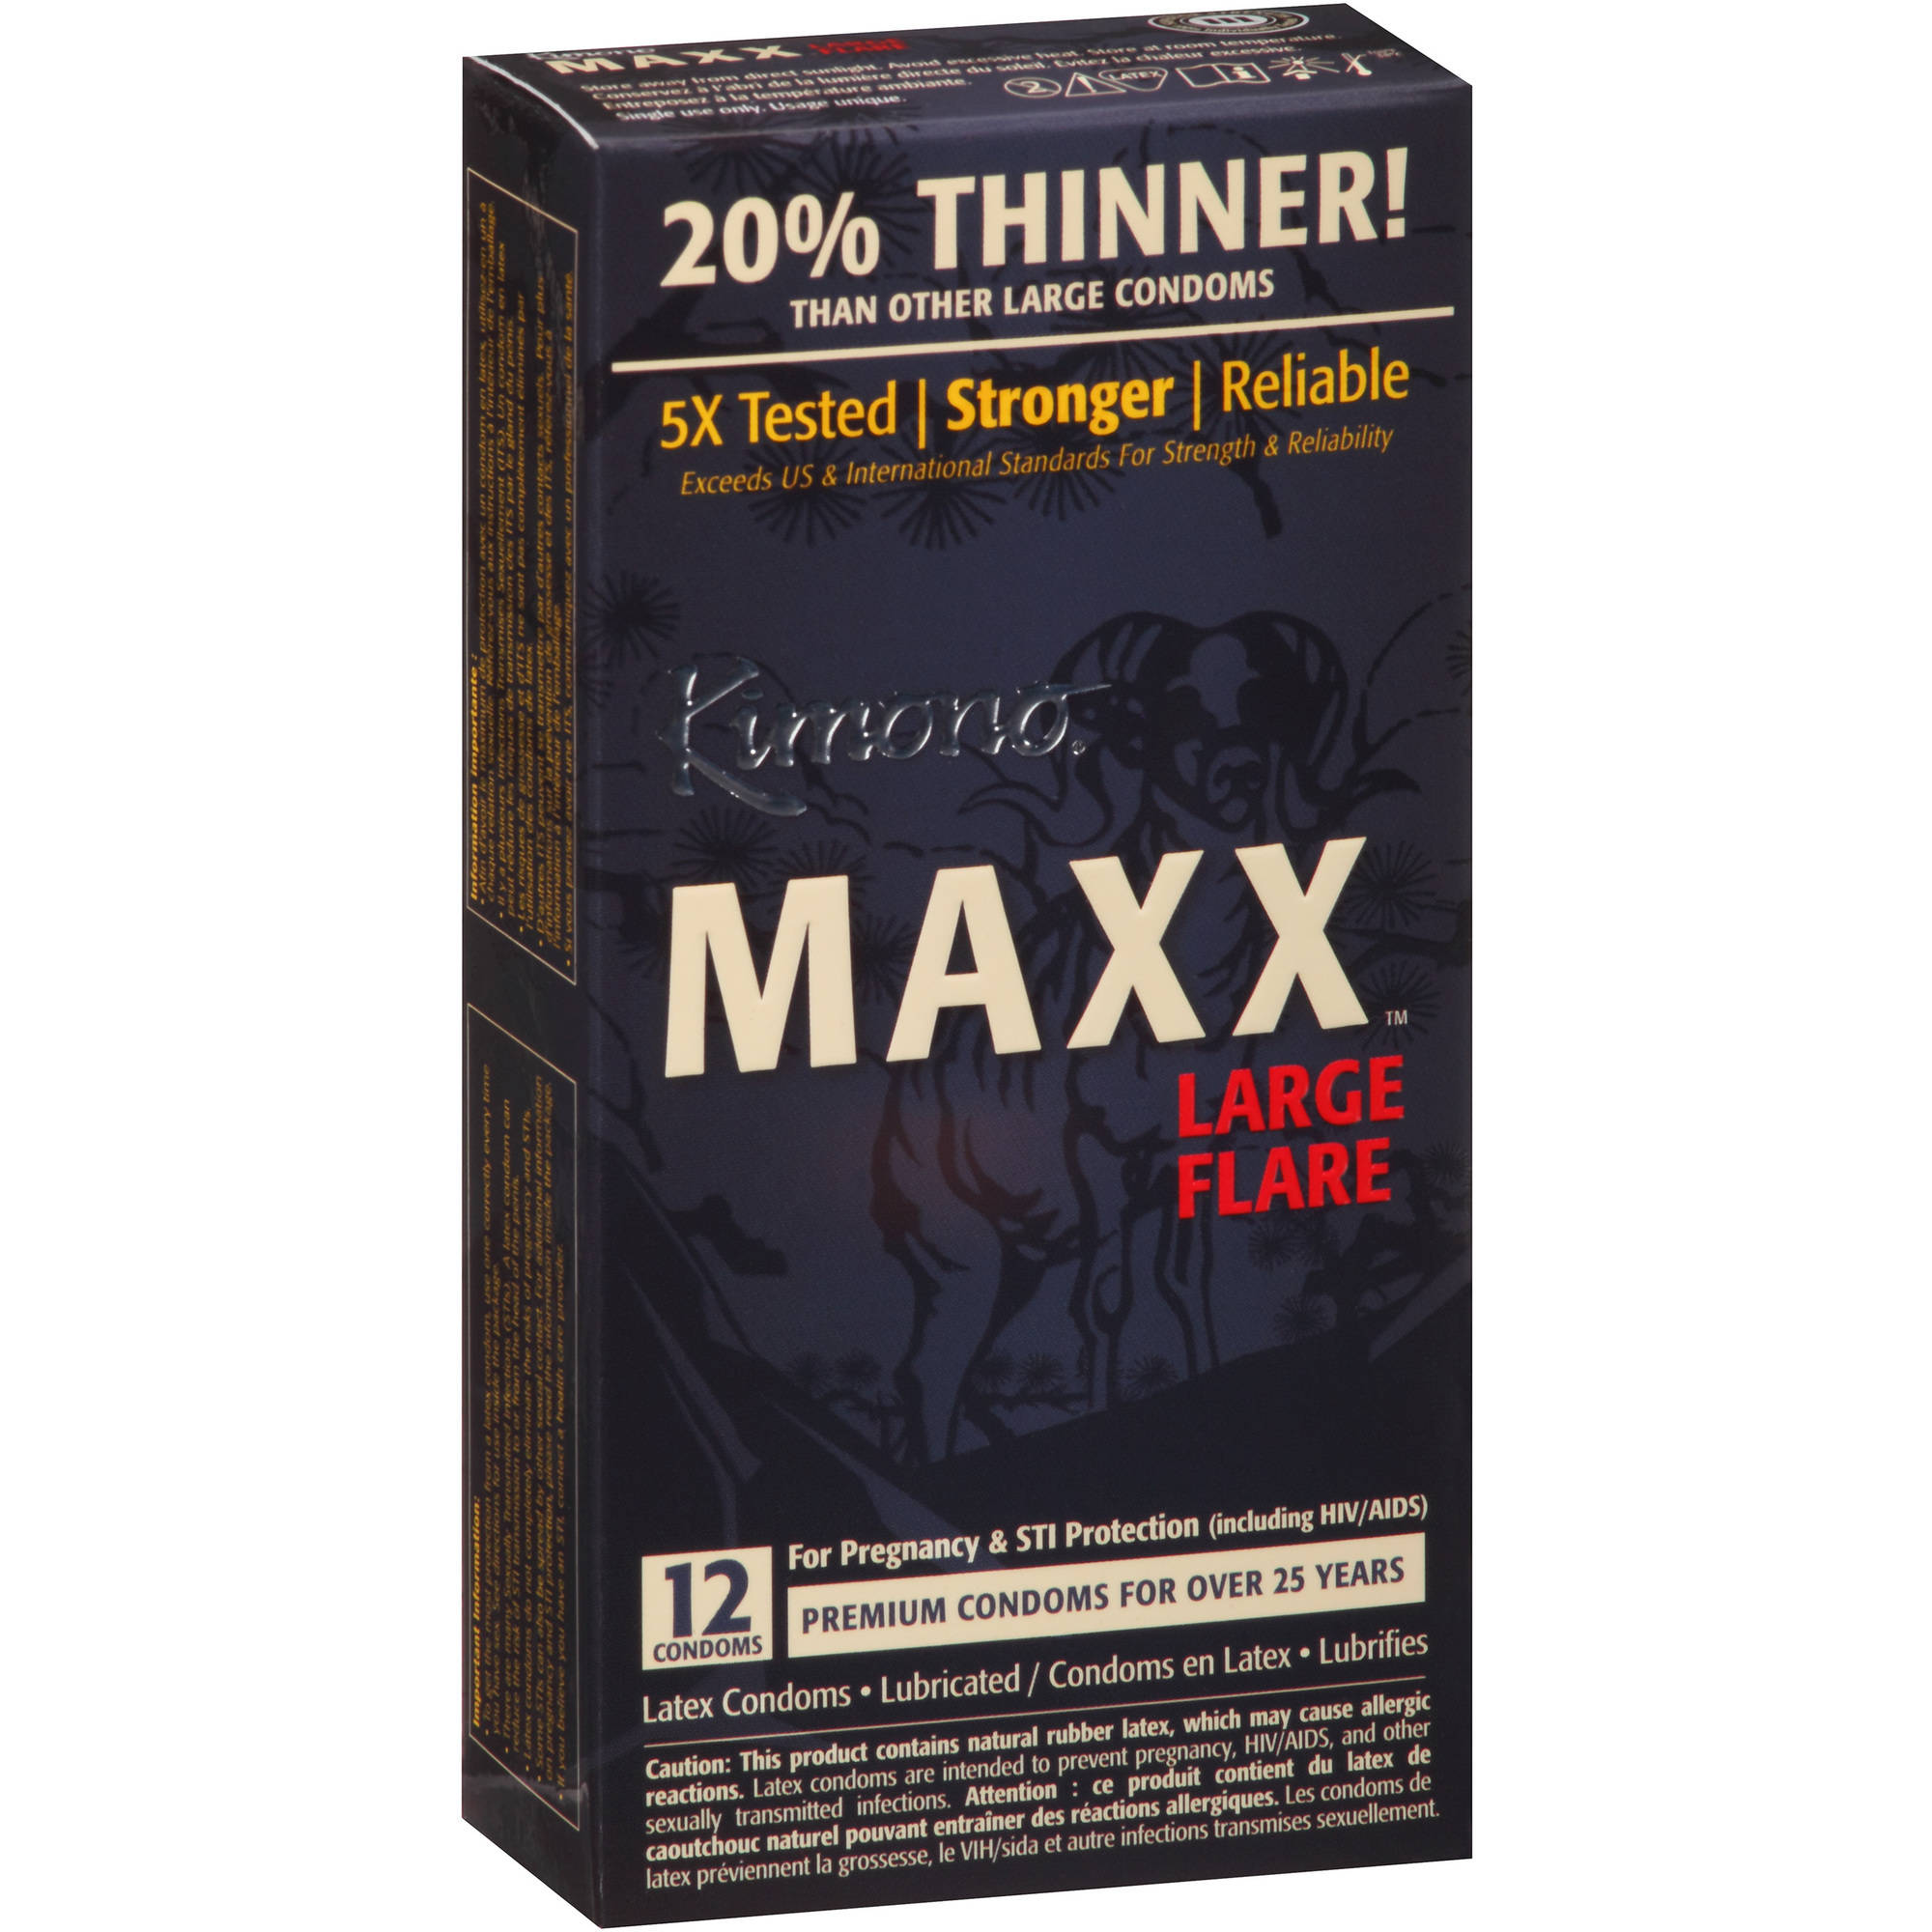 Kimono Maxx Large Flare Flare Lubricated Latex Condoms - 12 ct